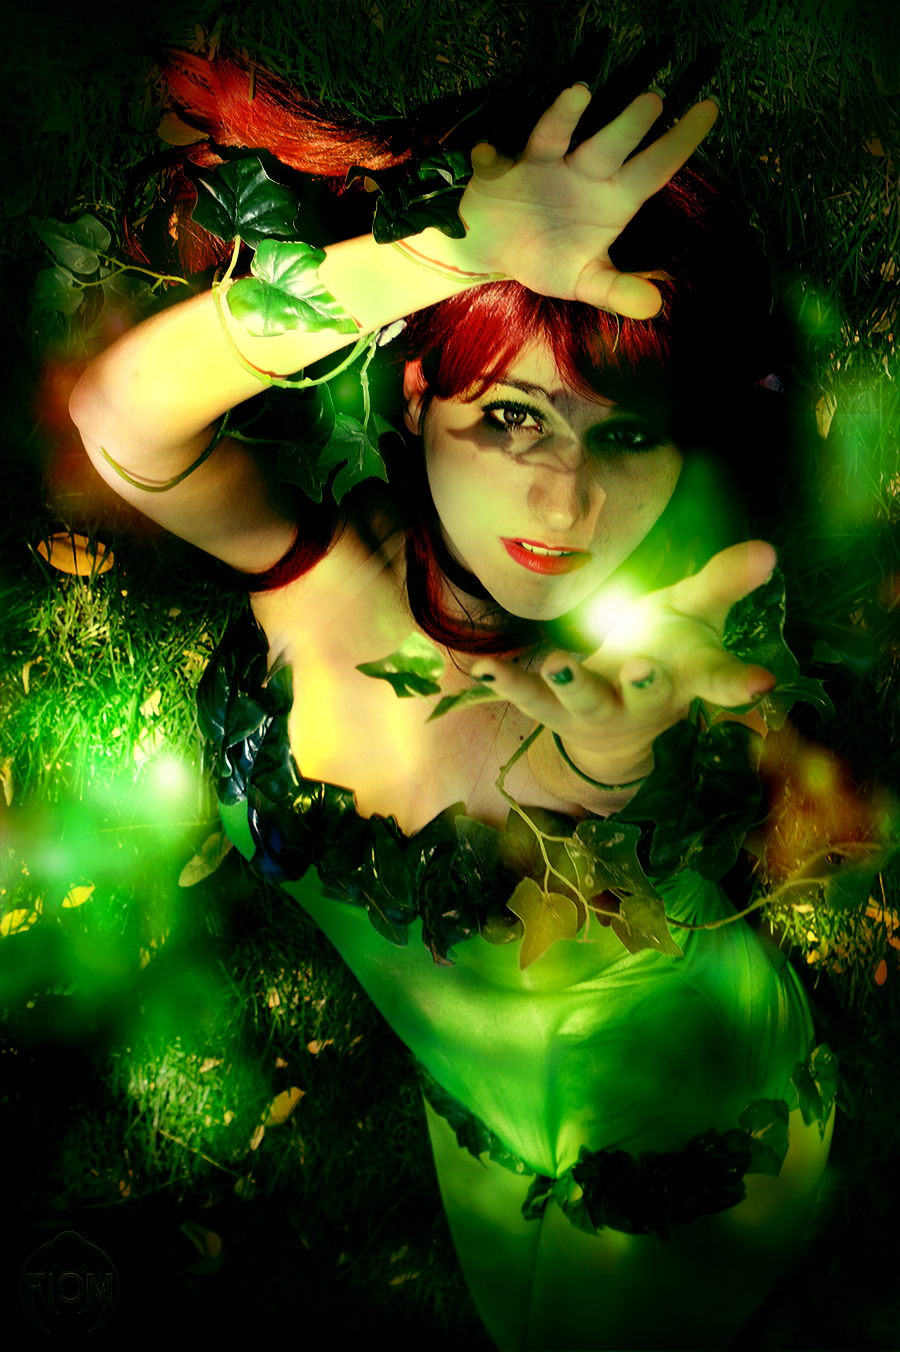 The power of nature - Poison Ivy by iamchipi